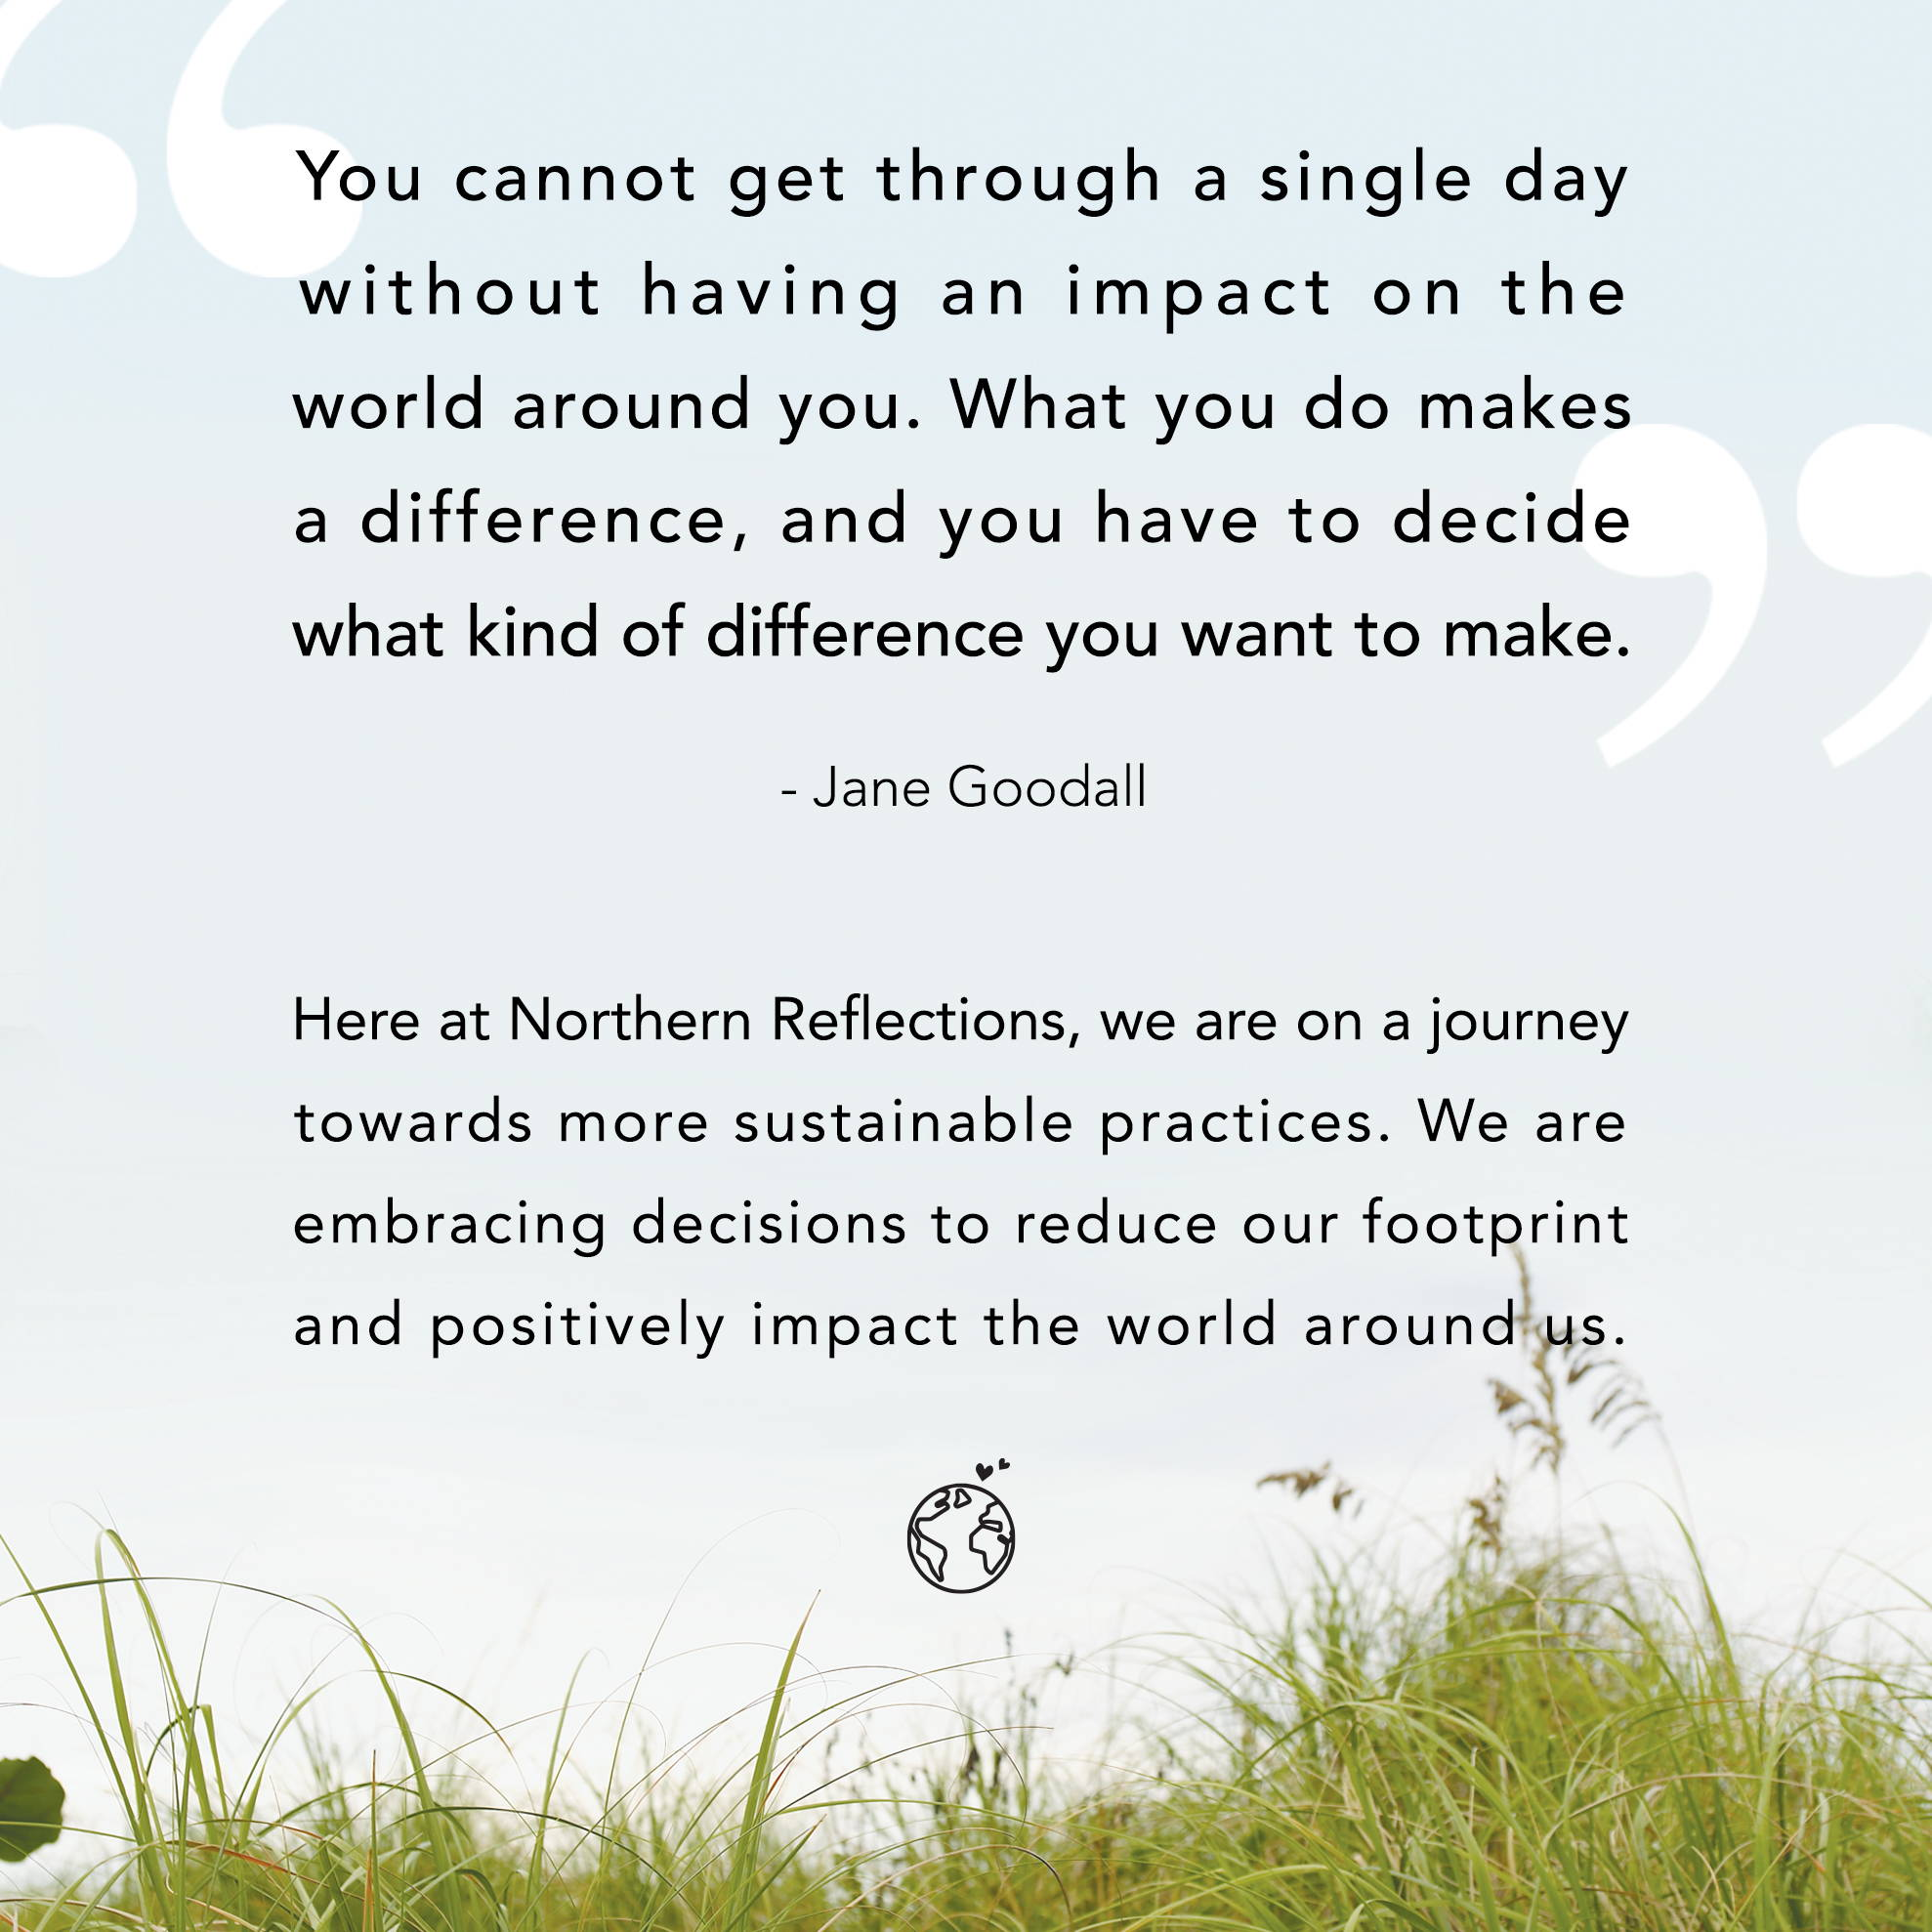 Here at Northern Reflections, we are on a journey towards more sustainable practices. We are embracing decisions to reduce our footprint and positively impact the world around us.